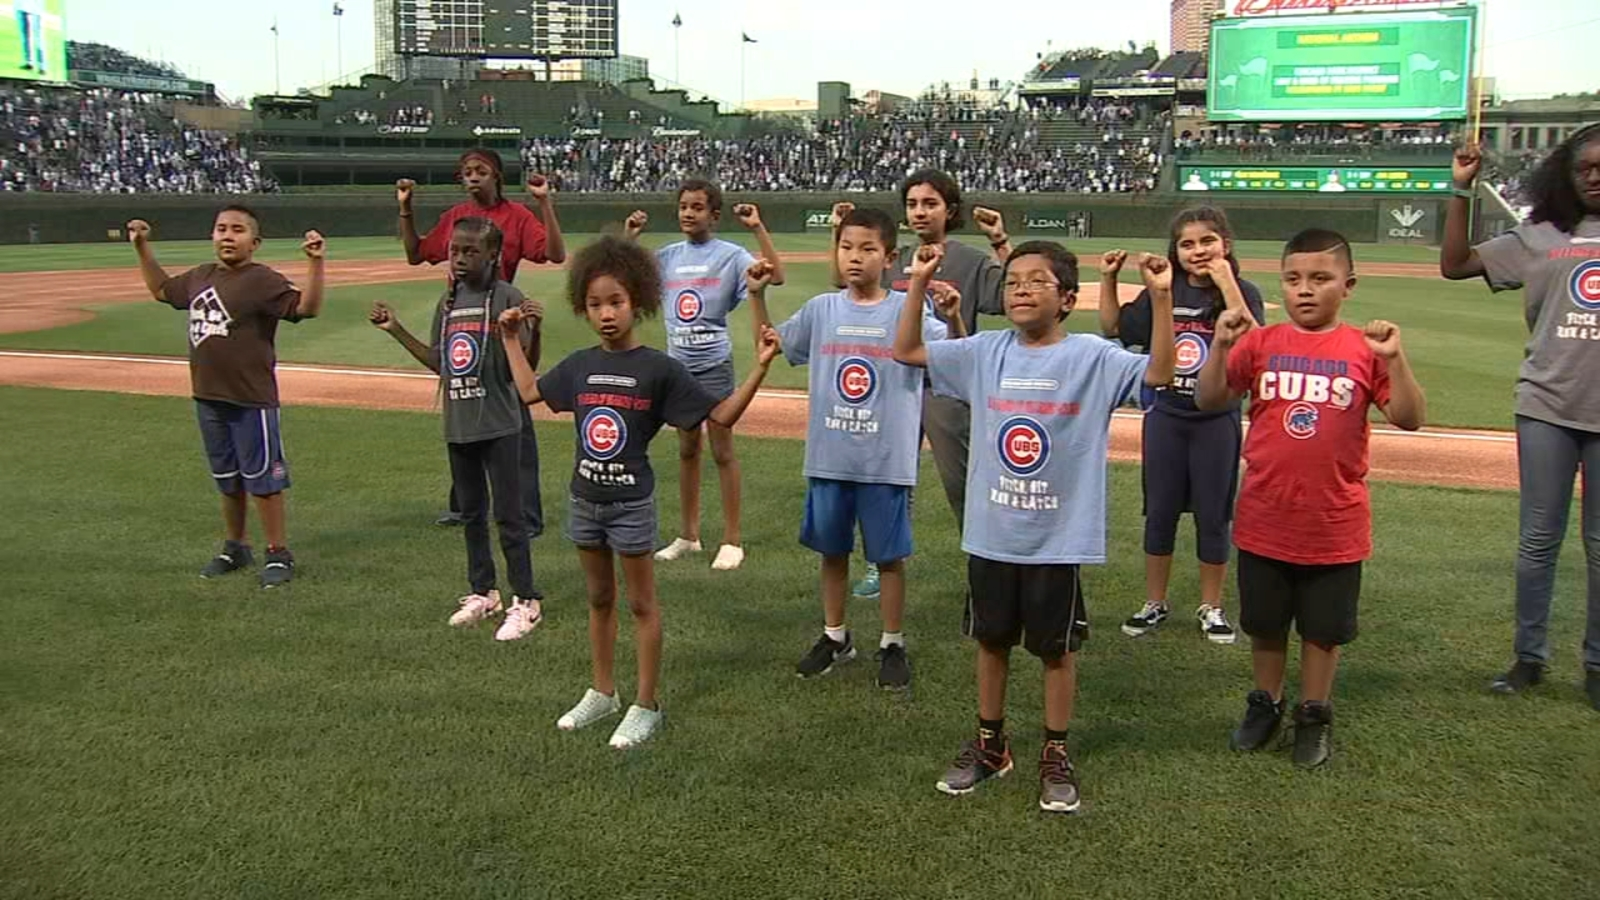 Deaf, hard-of-hearing children from Camp Sign Adventures perform national anthem at Cubs game